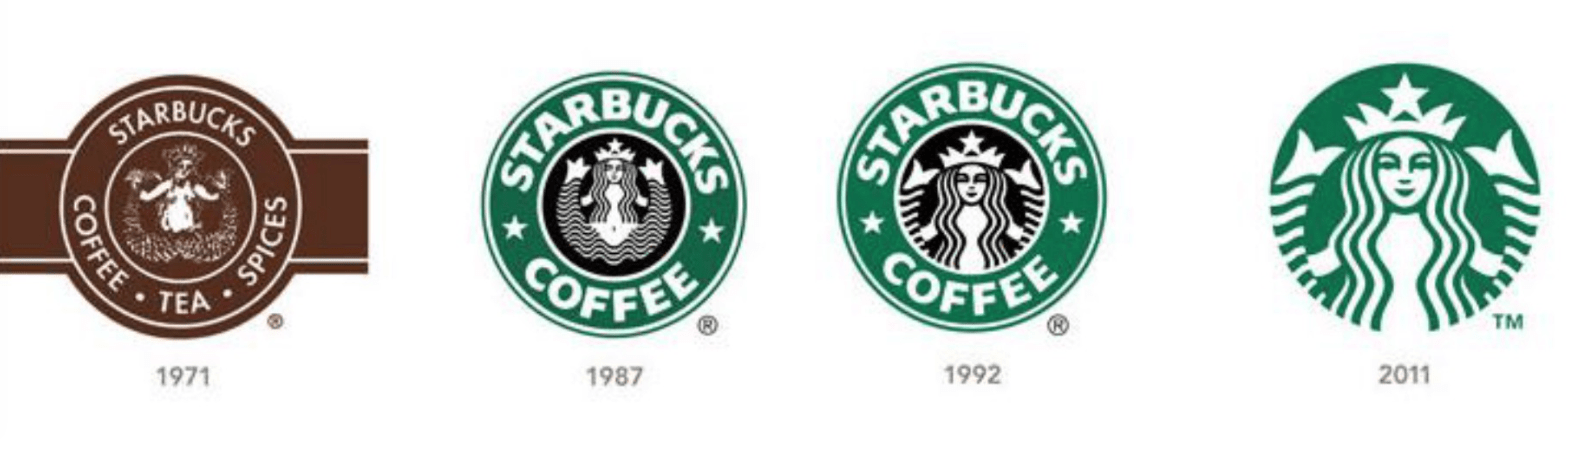 starbucks' brand and logo evolution